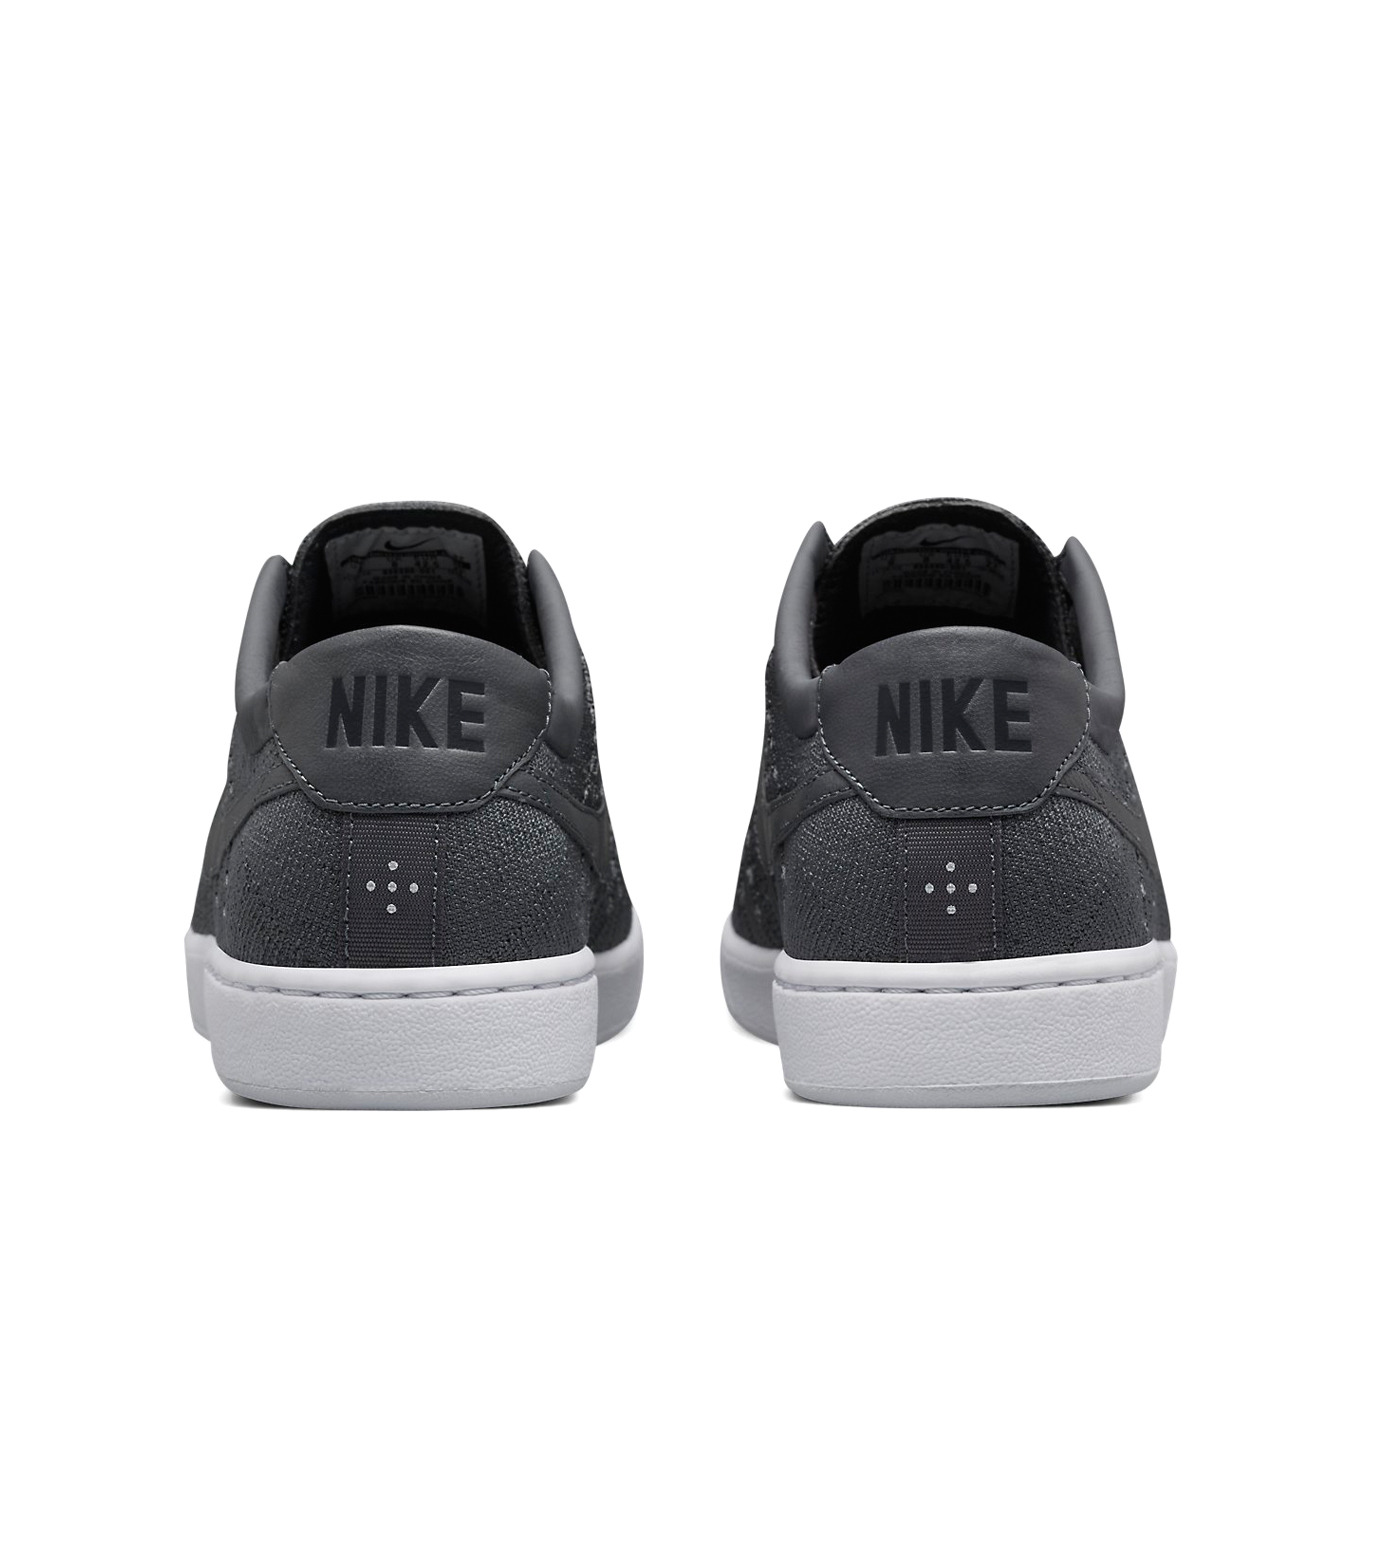 NIKE(ナイキ)のCOURT TENNIS CLASSIC ULTRA FLYKNIT X RF-GRAY(シューズ/shoes)-836360-001-11 拡大詳細画像5